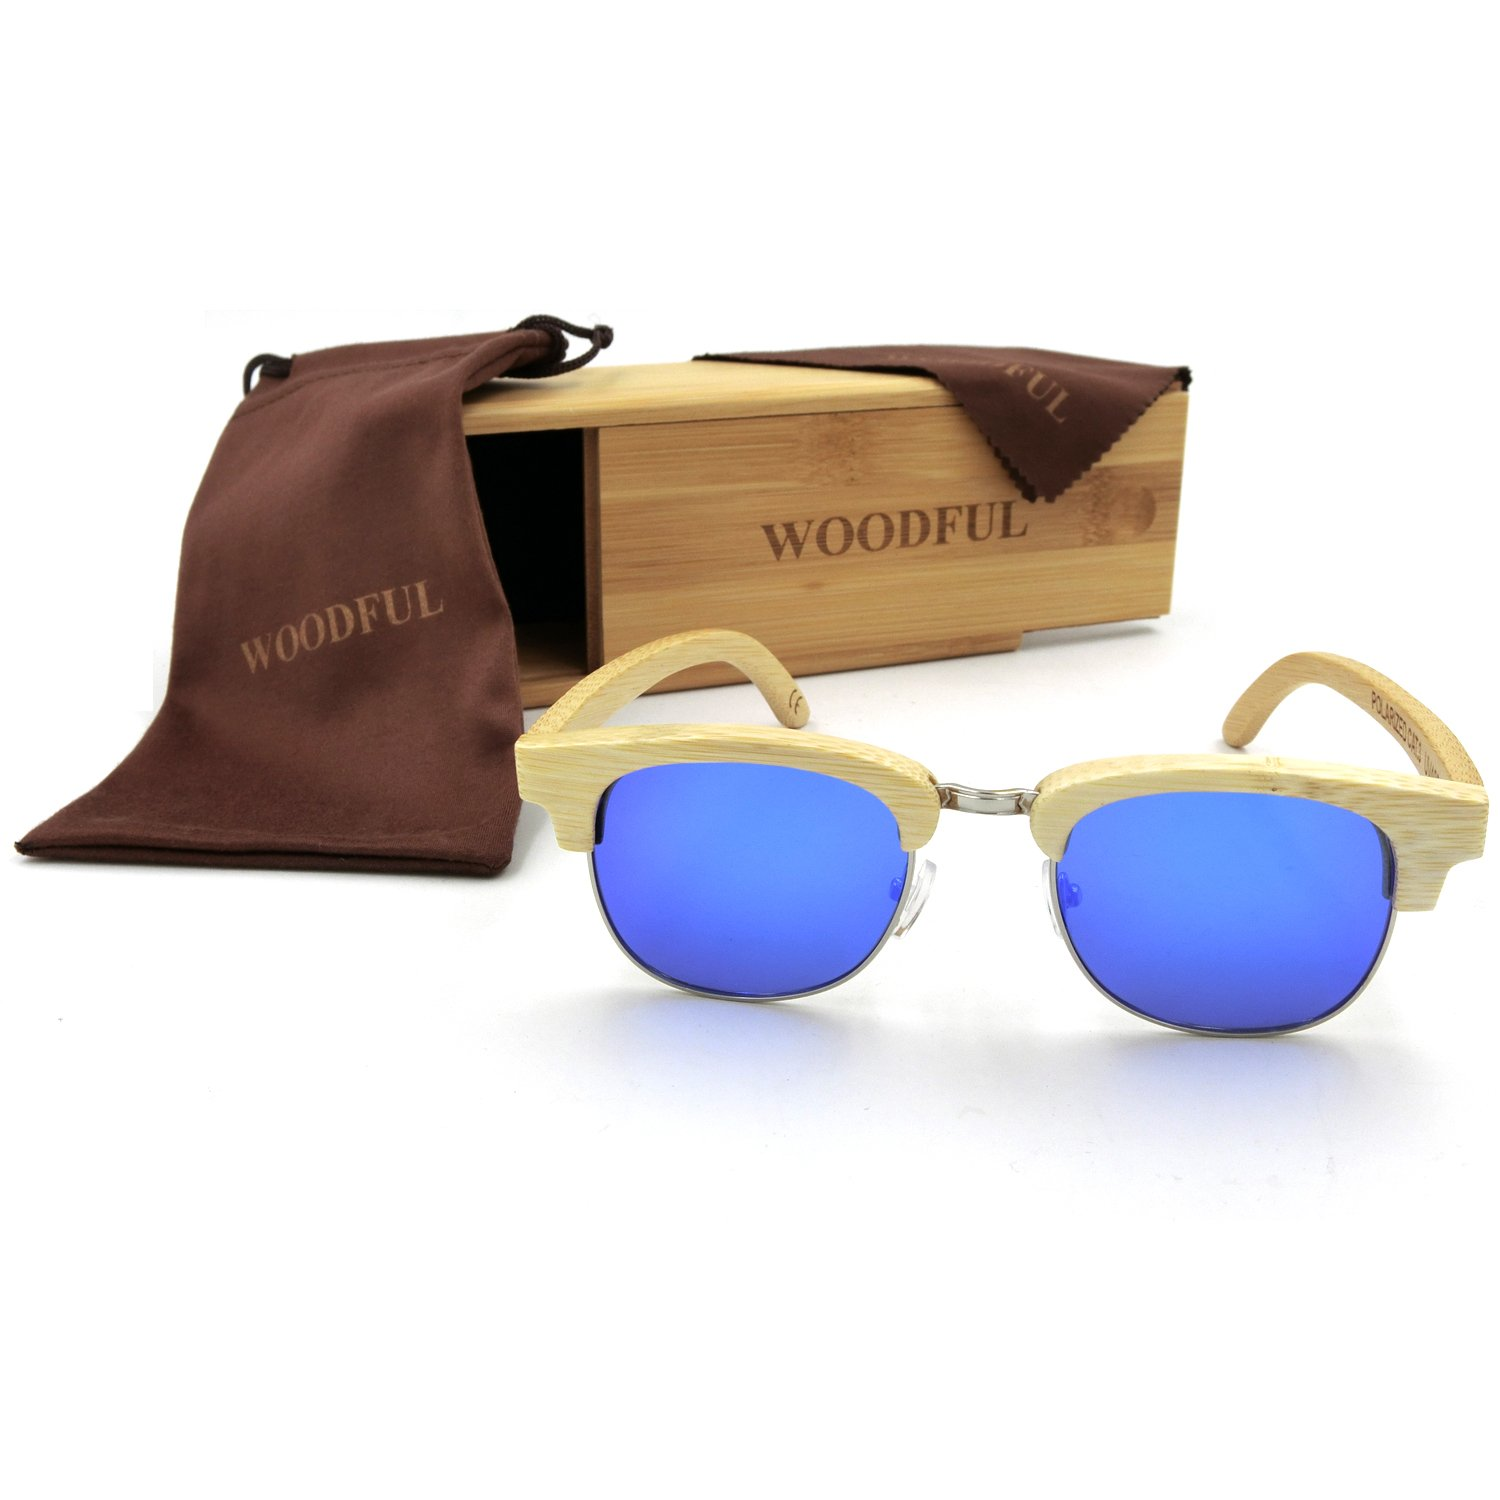 Bamboo Sunglasses Men Women Polarized Wooden Glasses with Case